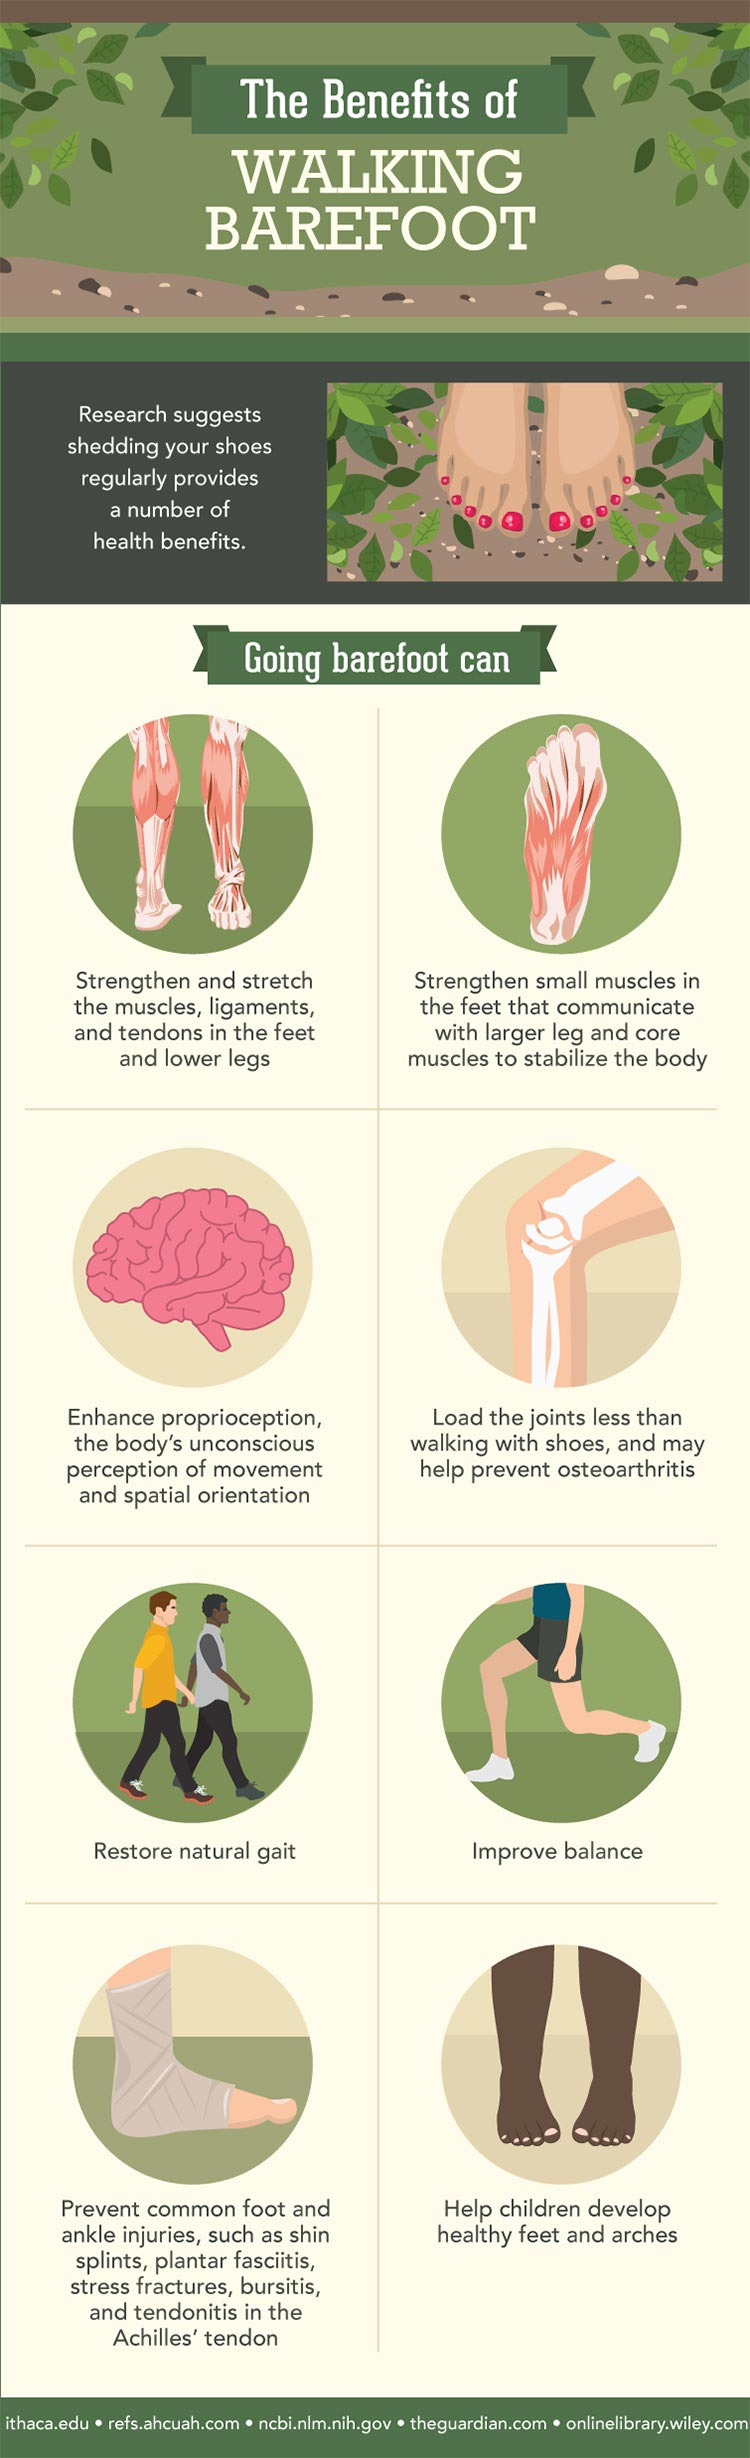 Benefits of walking barefoot, University Foot and Ankle Institute